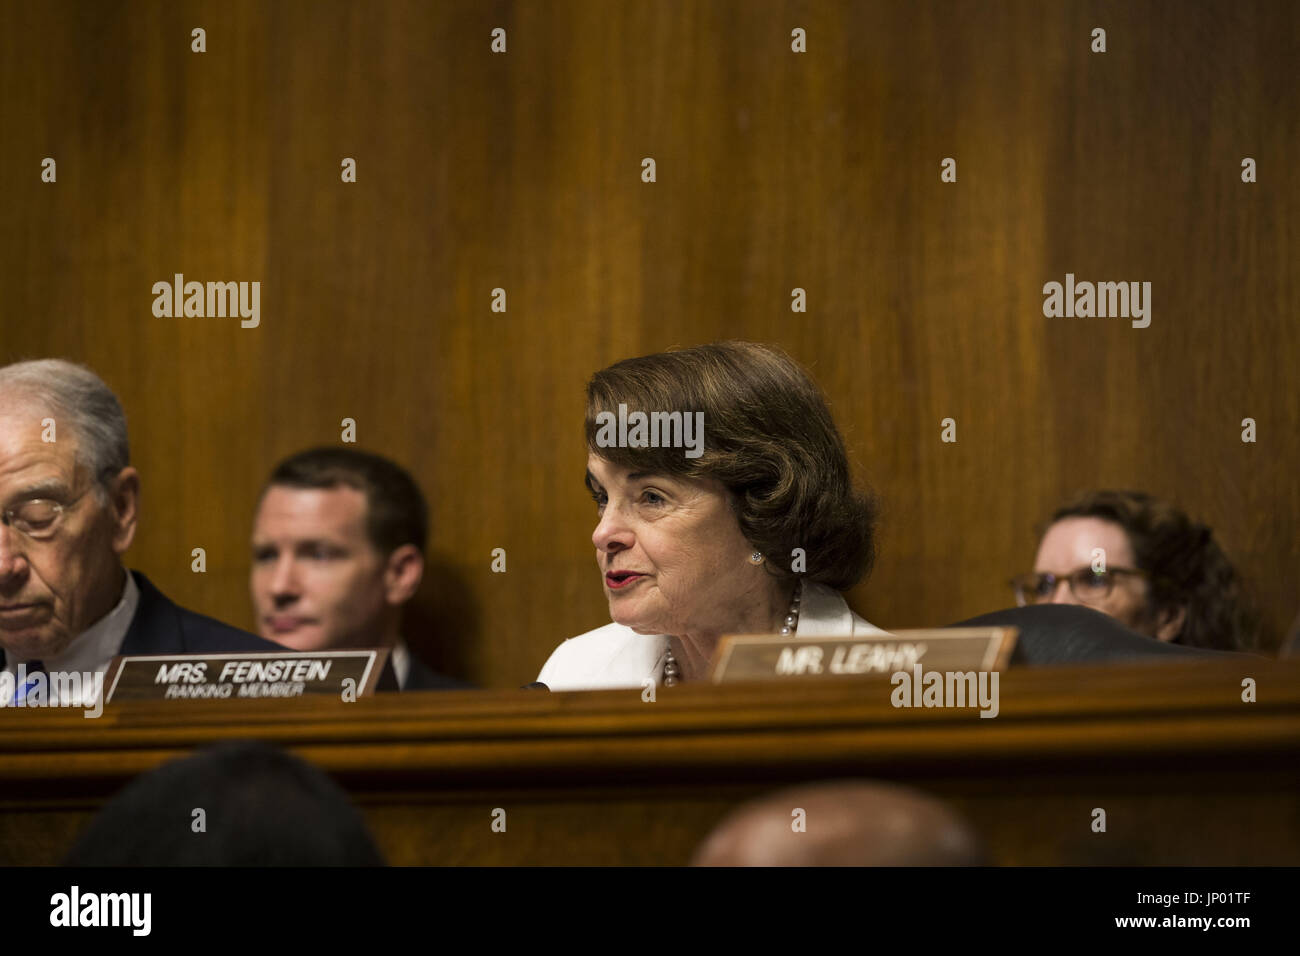 Washington, District of Columbia, USA. 12th July, 2017. Sen. DIANNE FEINSTEIN (D-CA) during Christopher Wray's - Stock Image